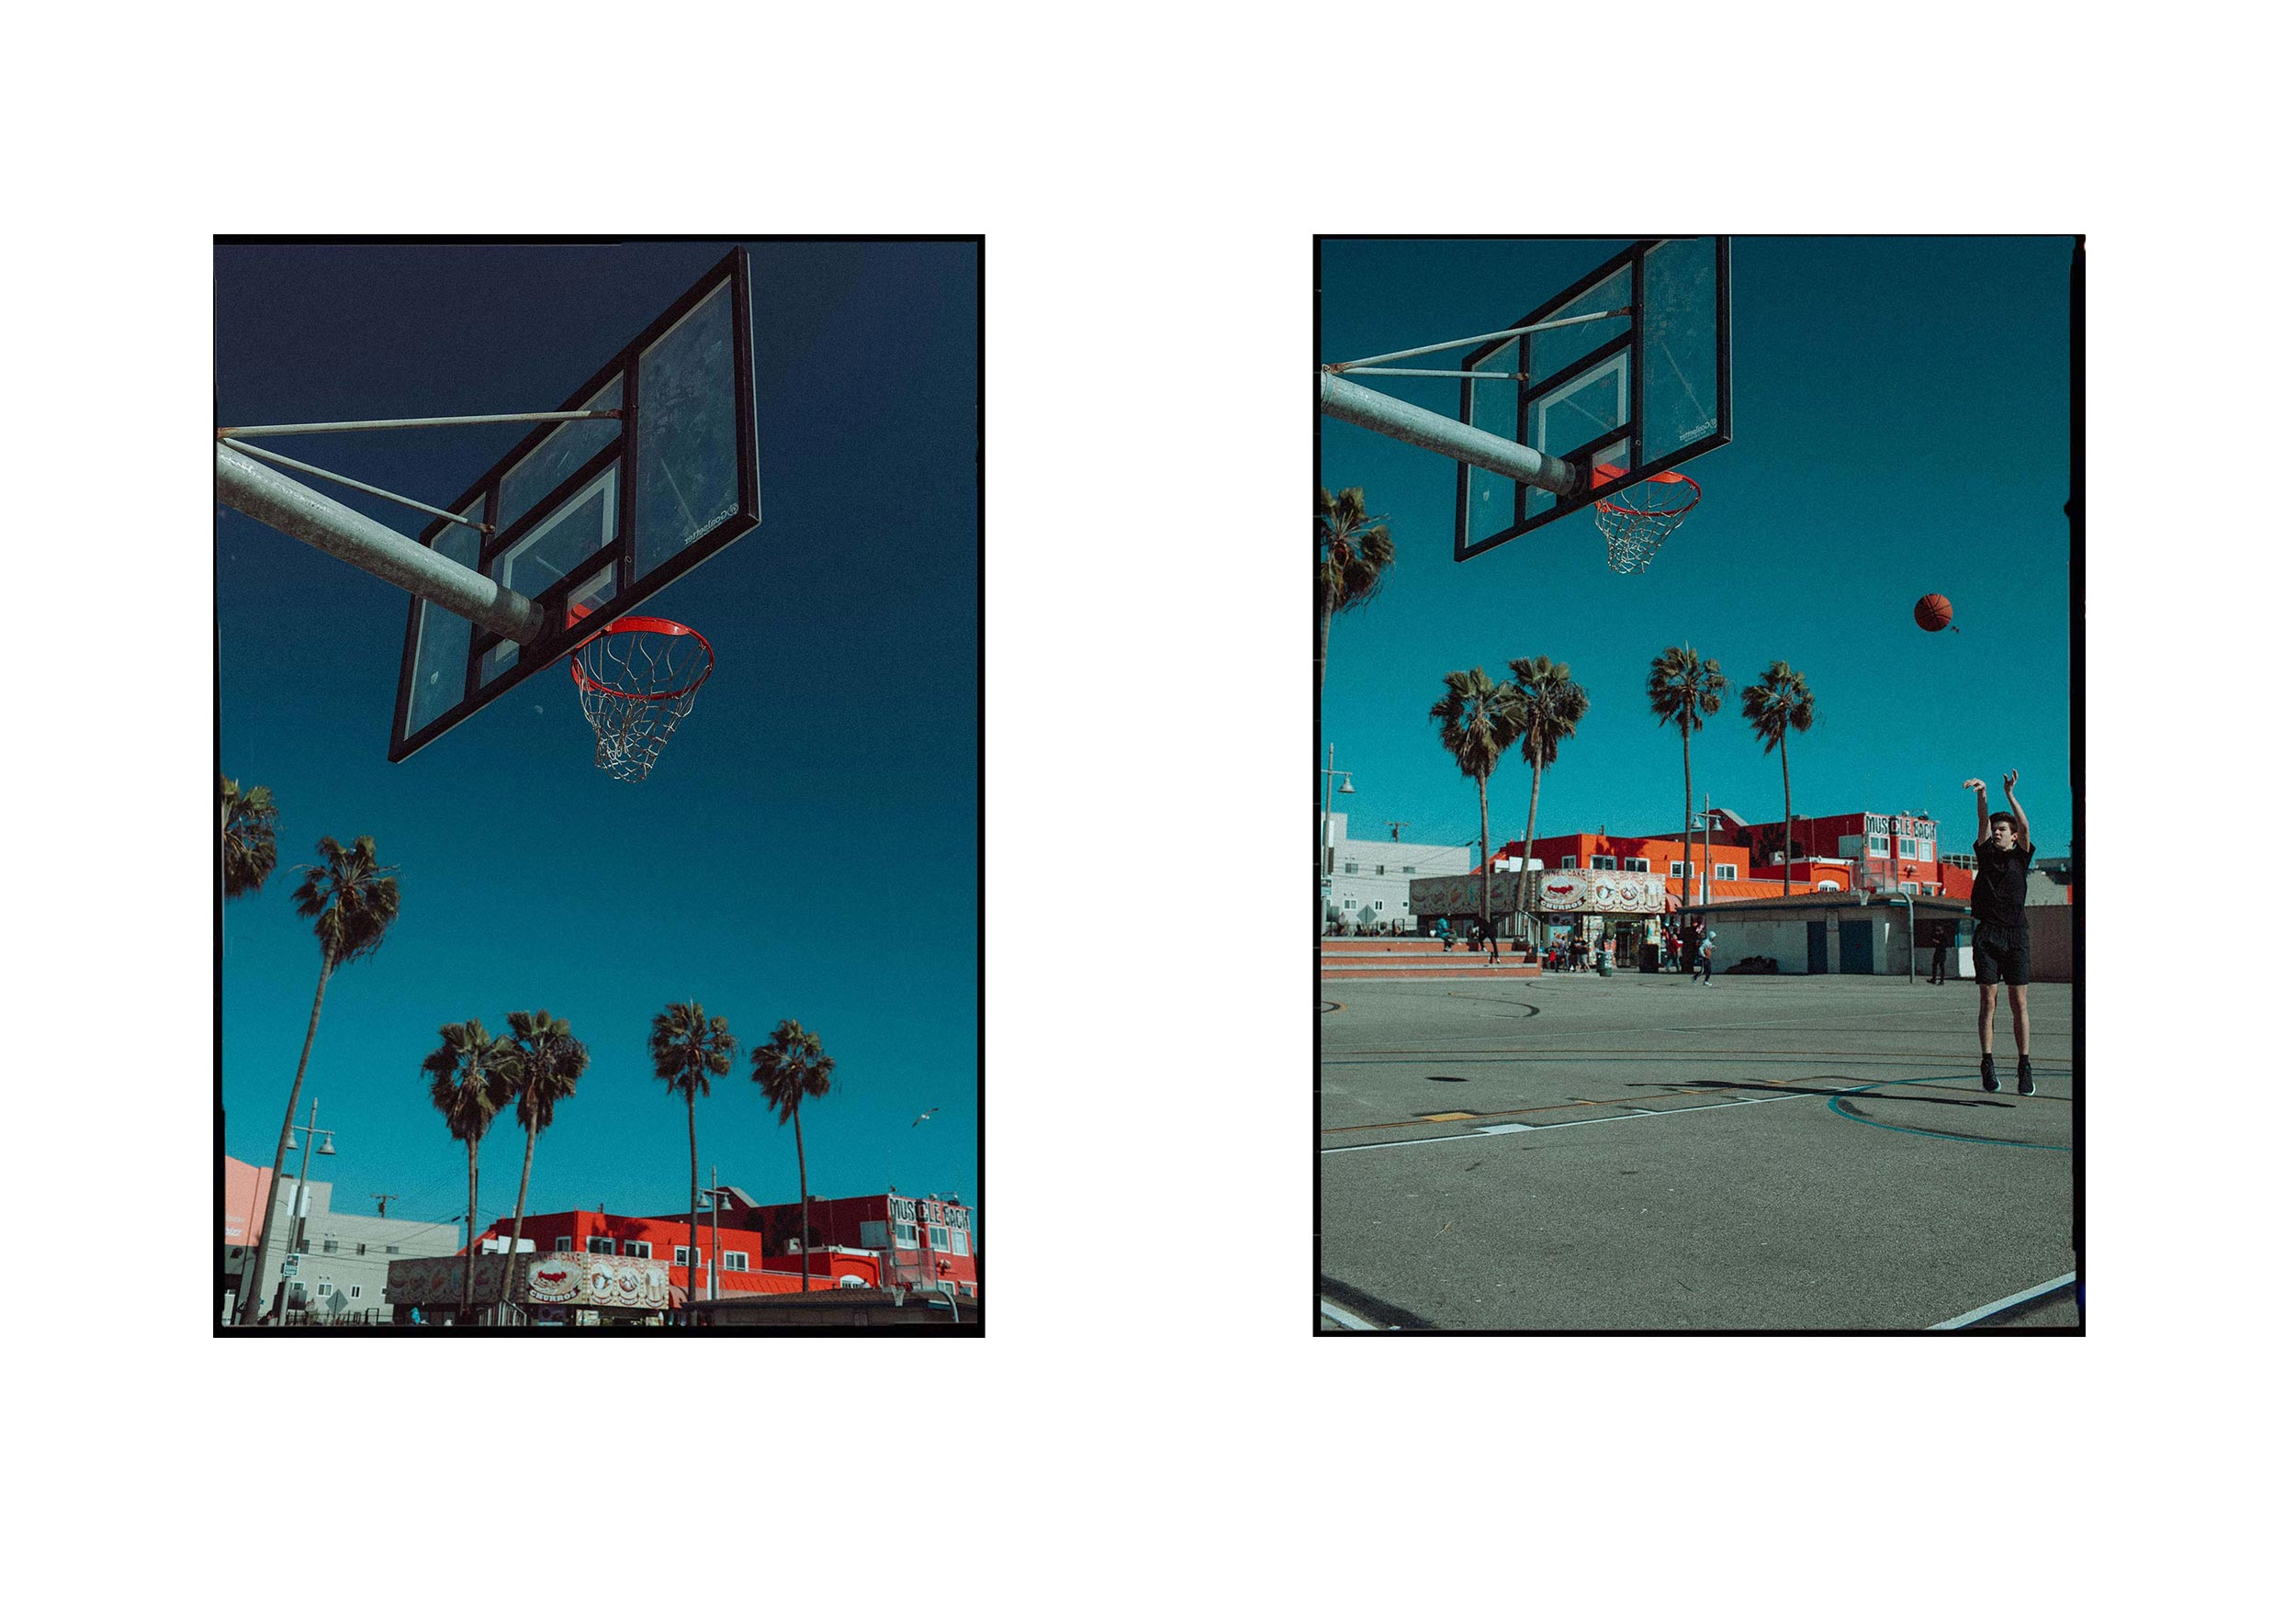 Courts & palms. Santa Monica, California.